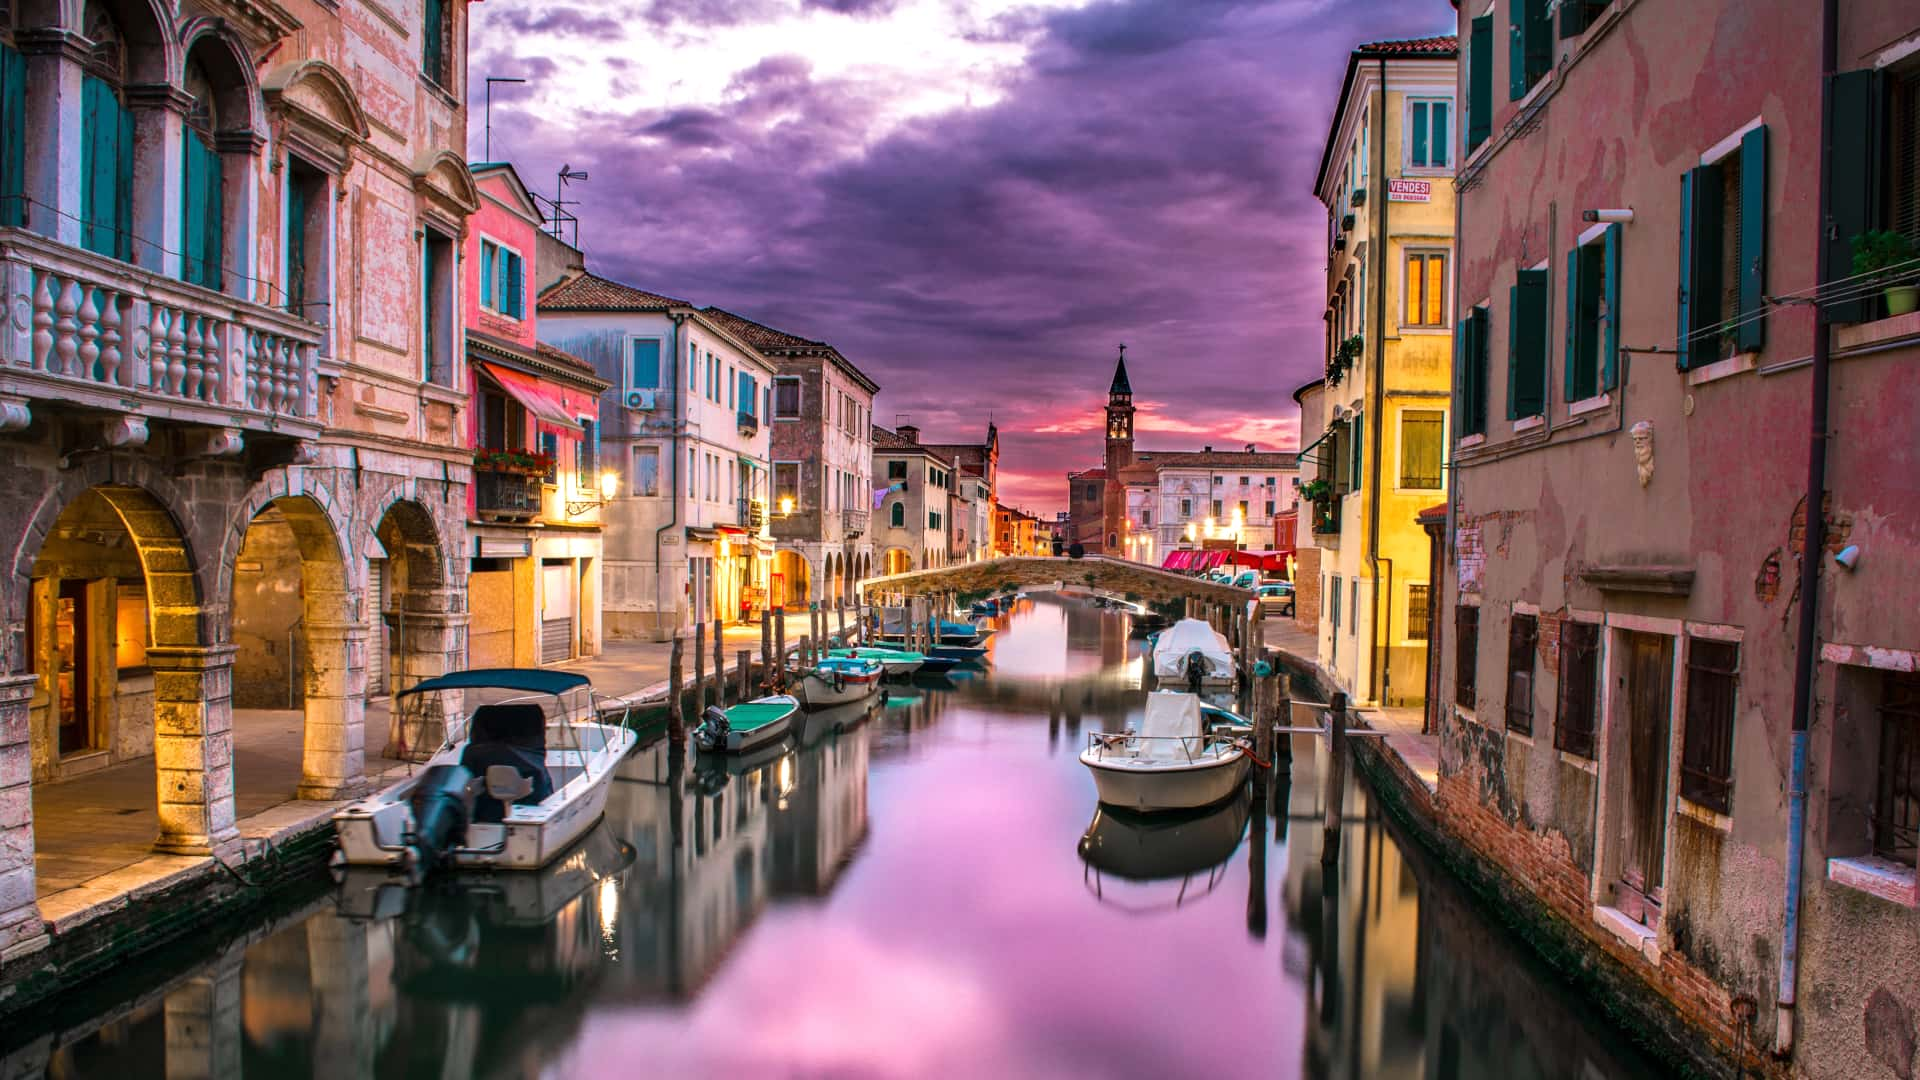 What are the Most Beautiful Cities in Northern Italy and Why